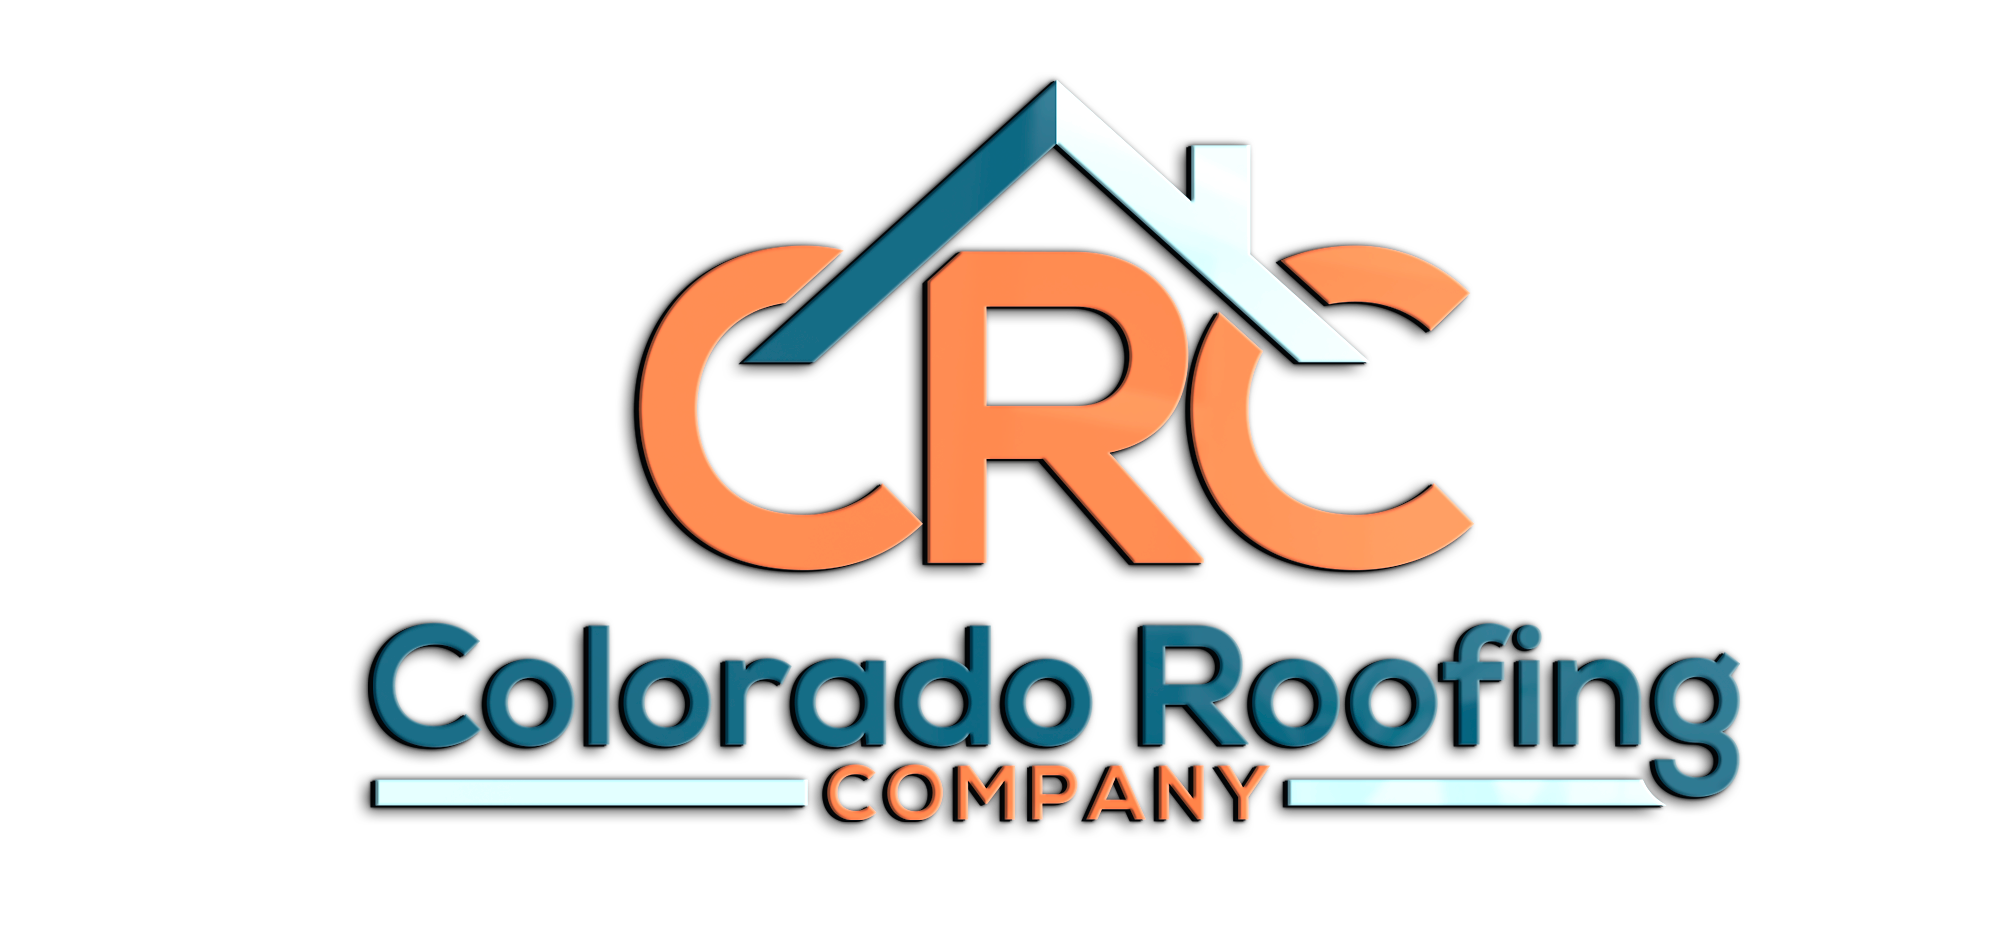 Colorado Roofing Company